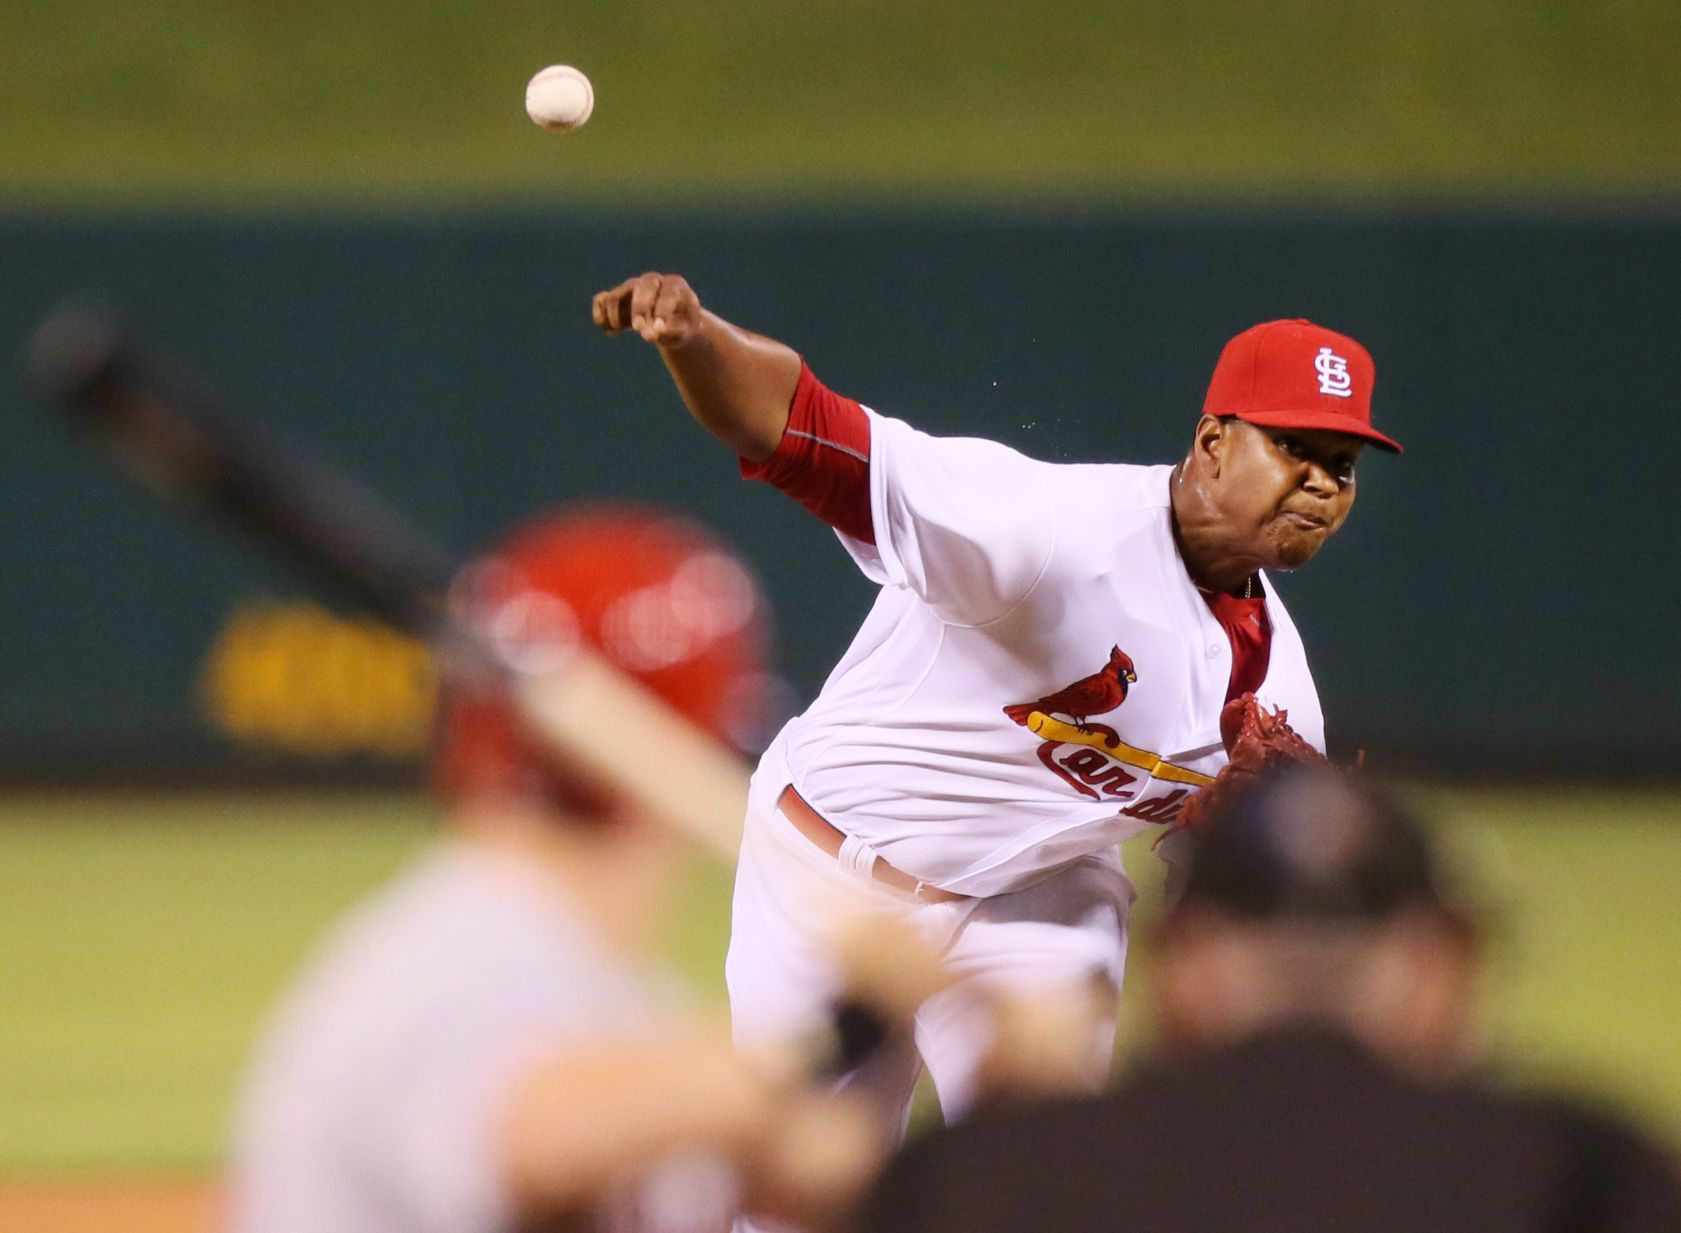 With Wacha on DL, Cards call for Reyes, Weaver